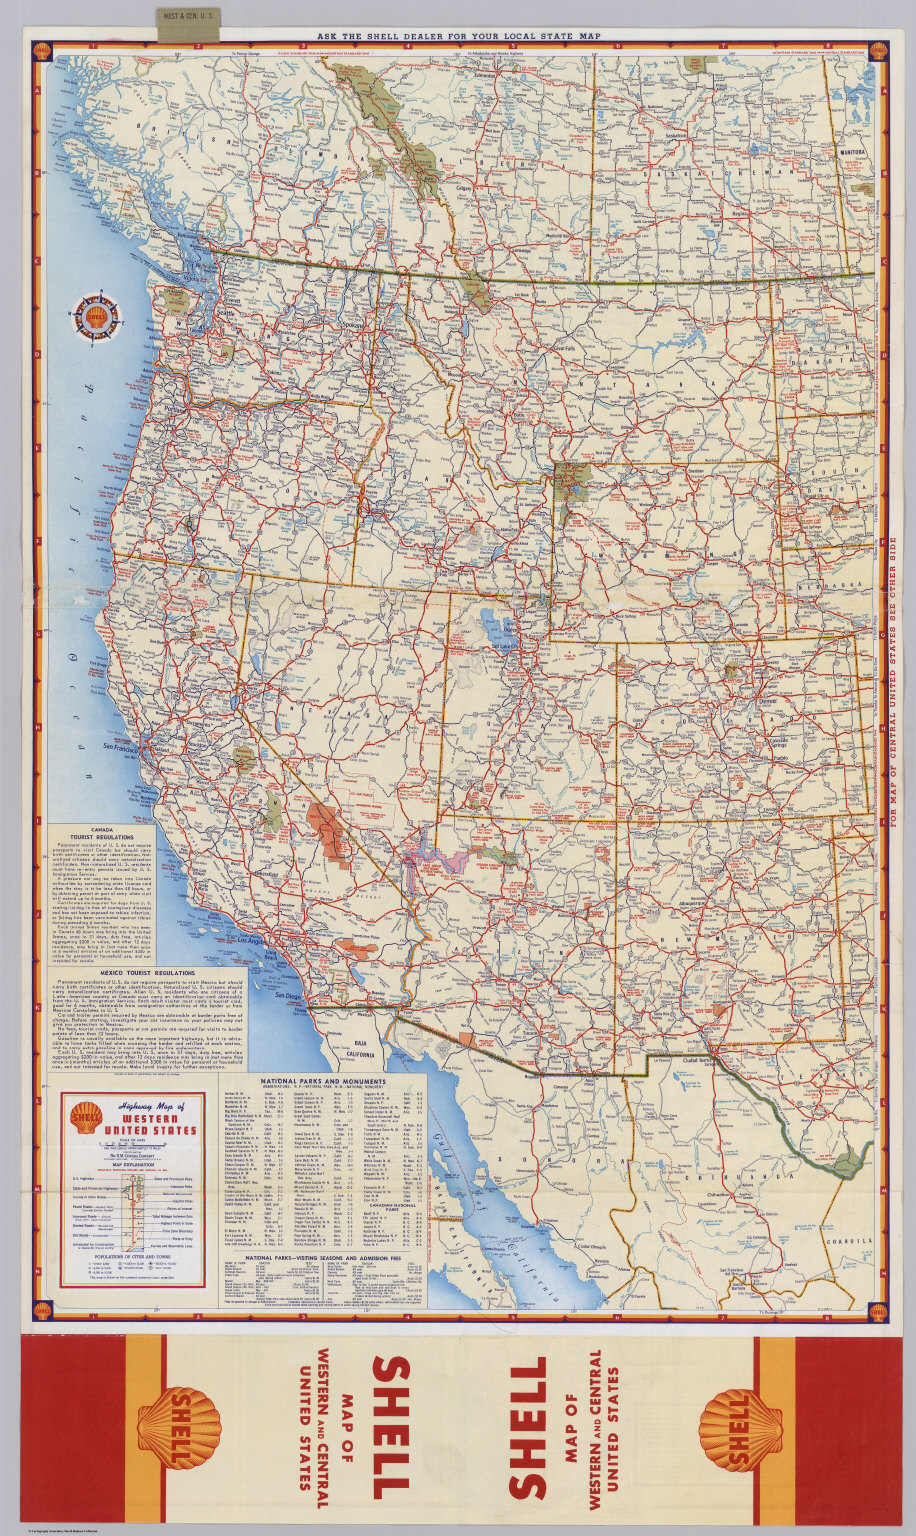 Us Western States Road Map Shell Highway Map of Western United States.   David Rumsey